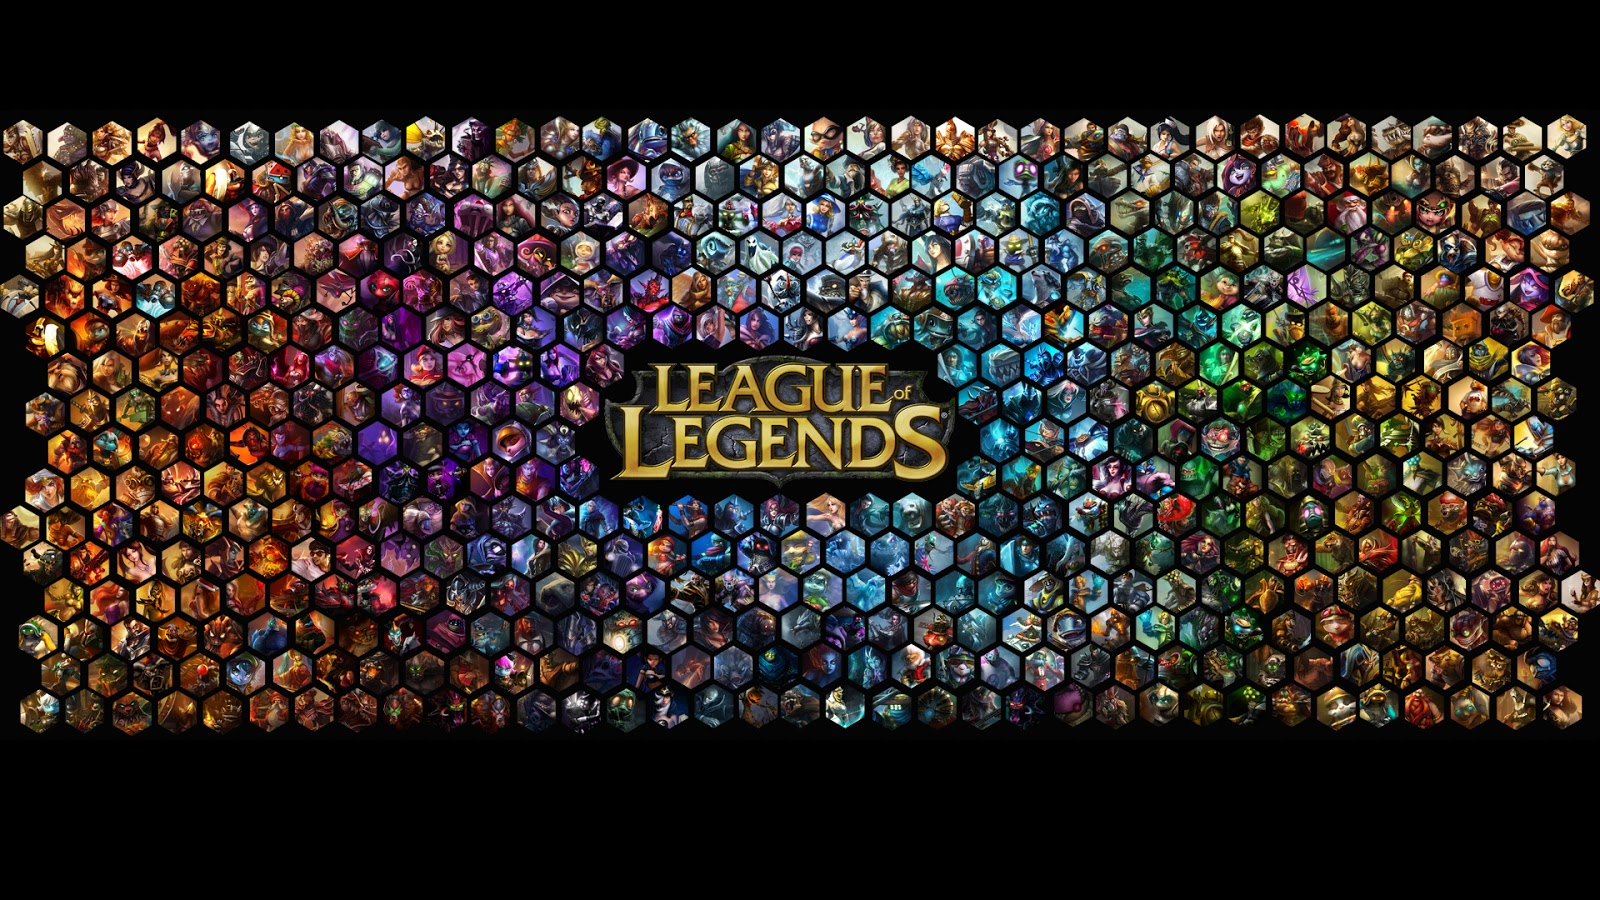 League legends champions